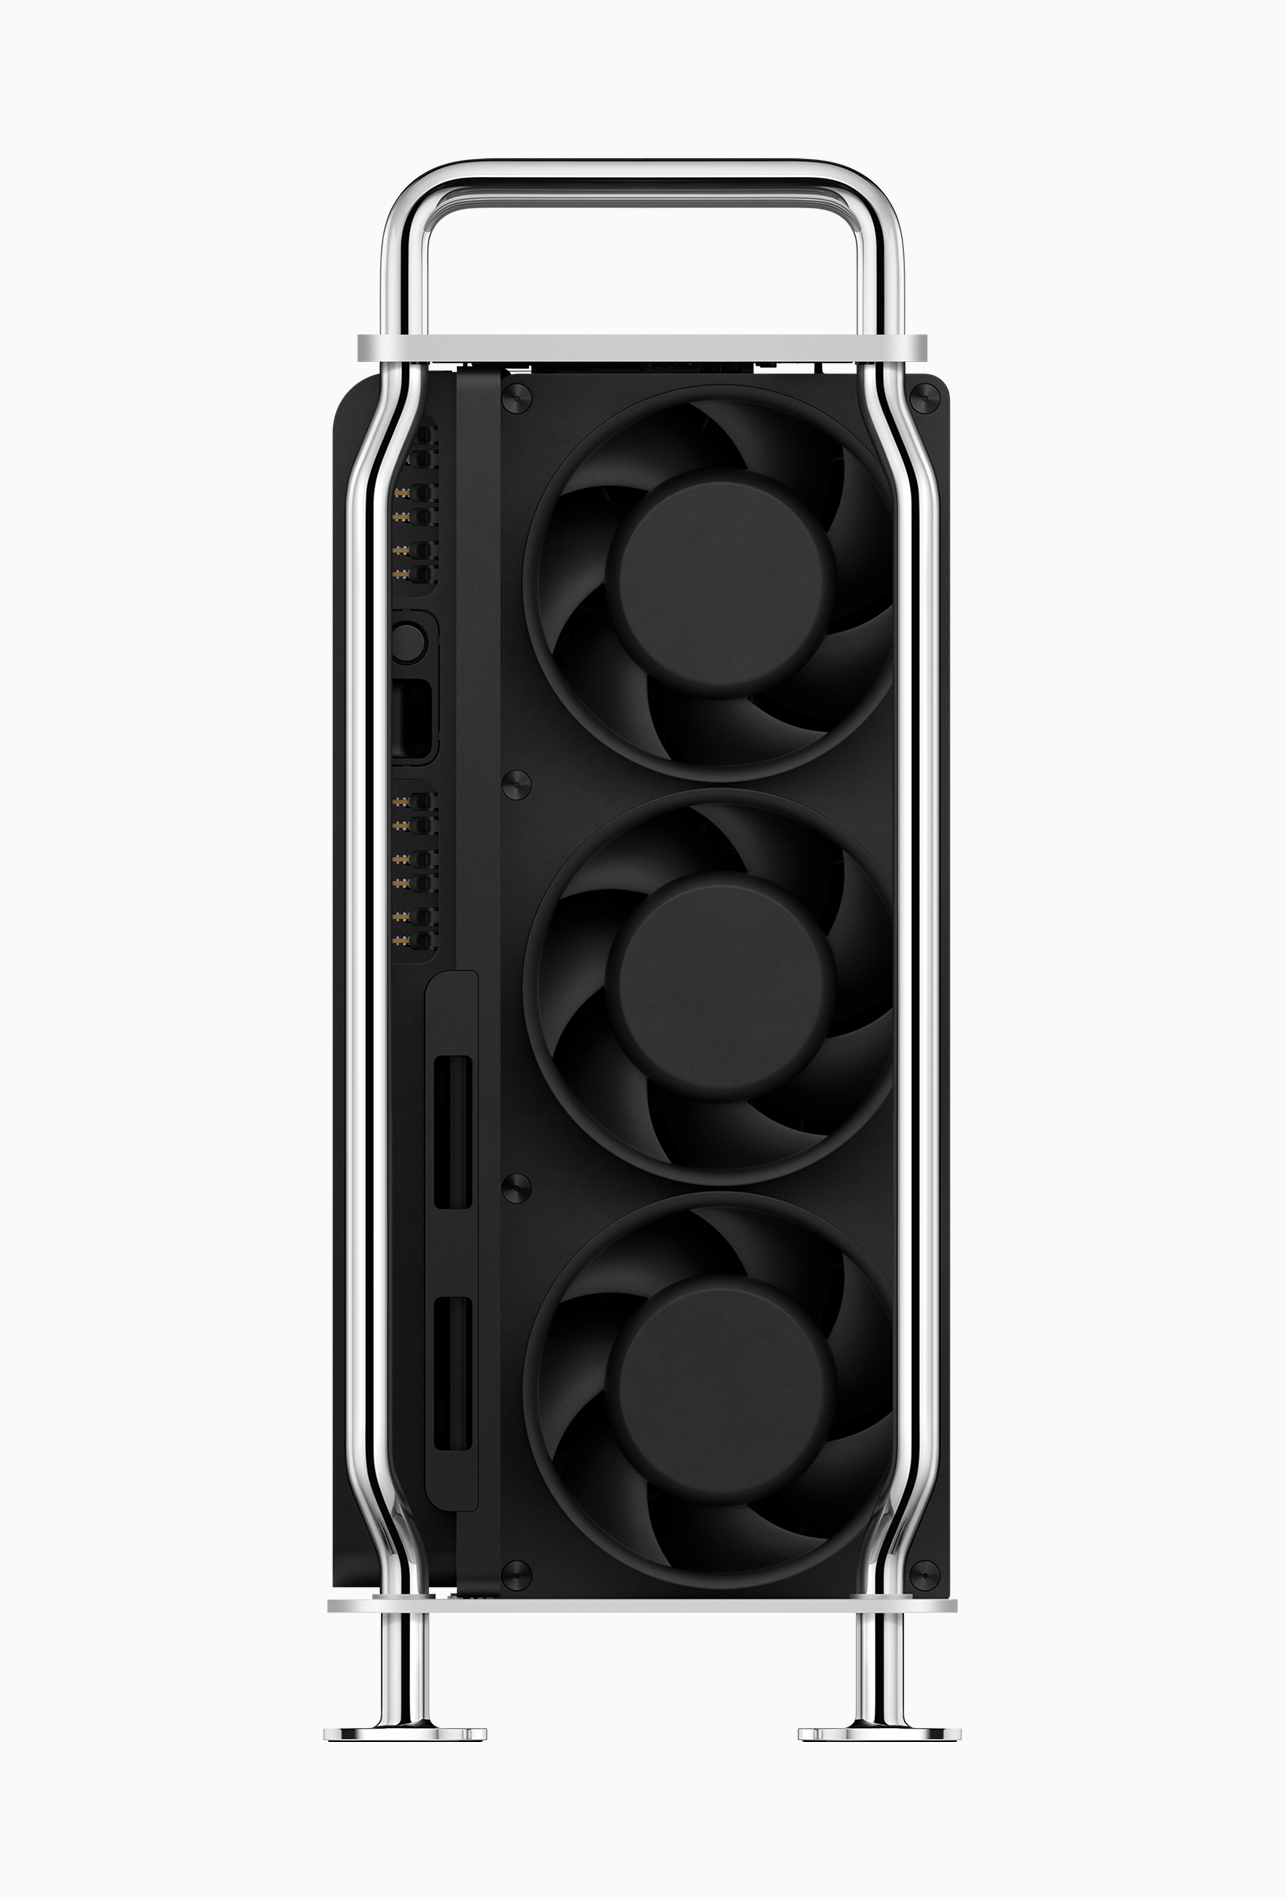 Apple_Mac-Pro-Display-Pro_Mac-Pro-Fan_060319.jpg